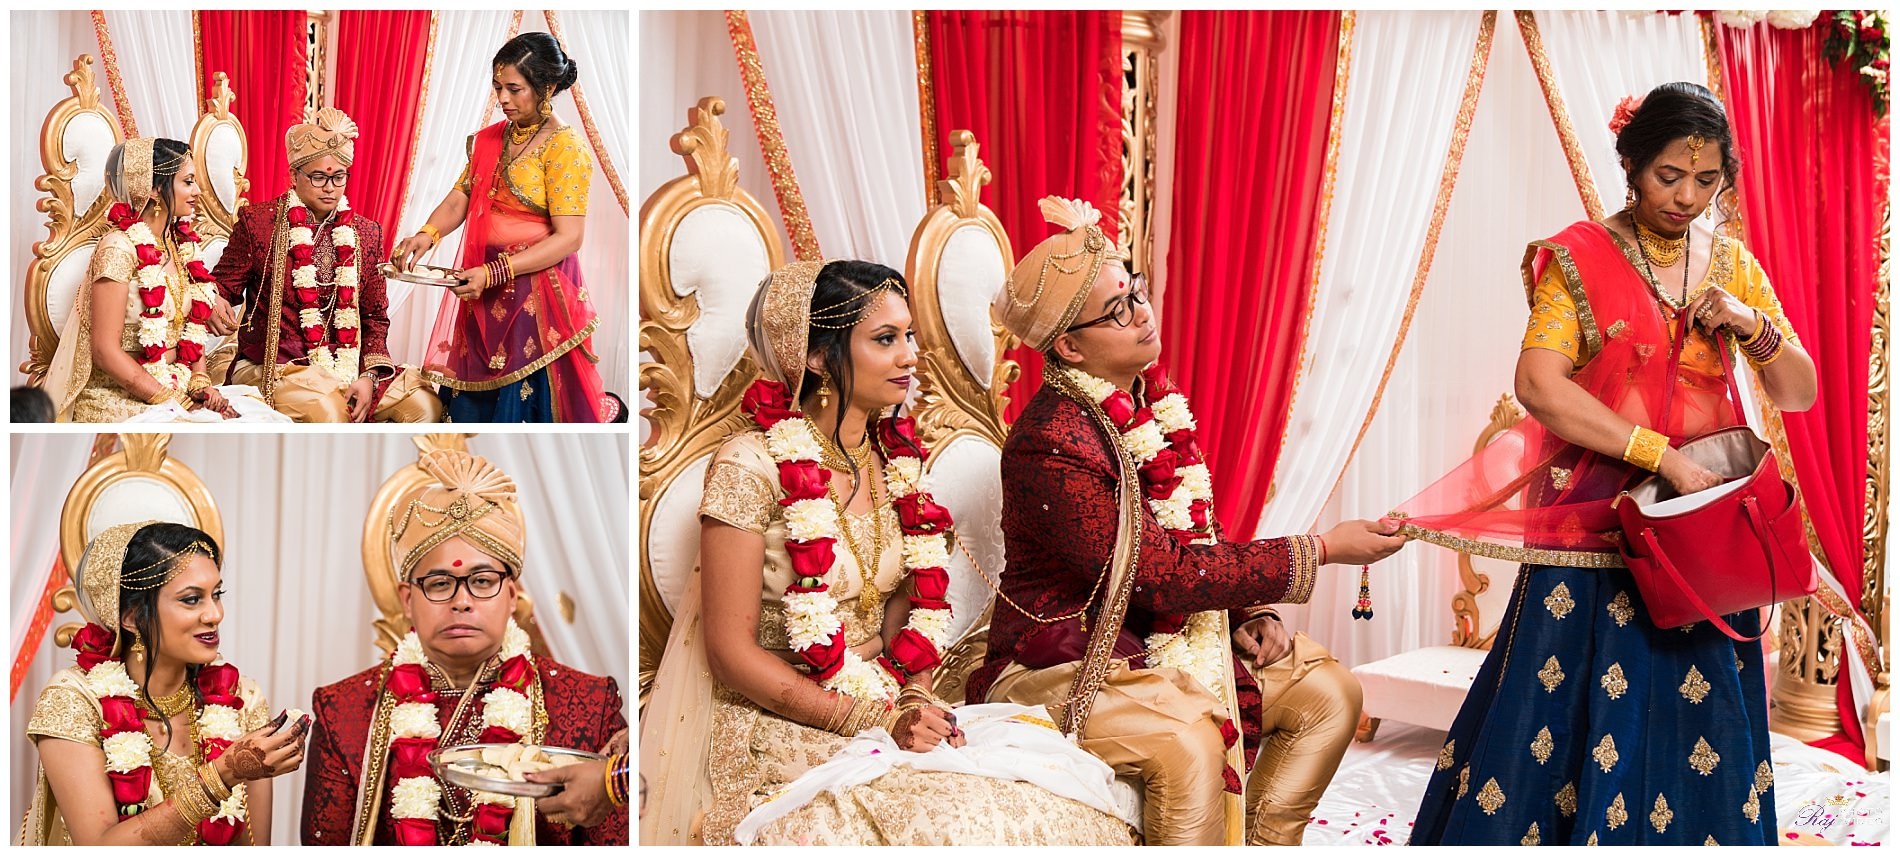 Aashirwad-Palace-Randolph-NJ-Hindu-Wedding-Ceremony-Khusbu-Jeff-21.jpg